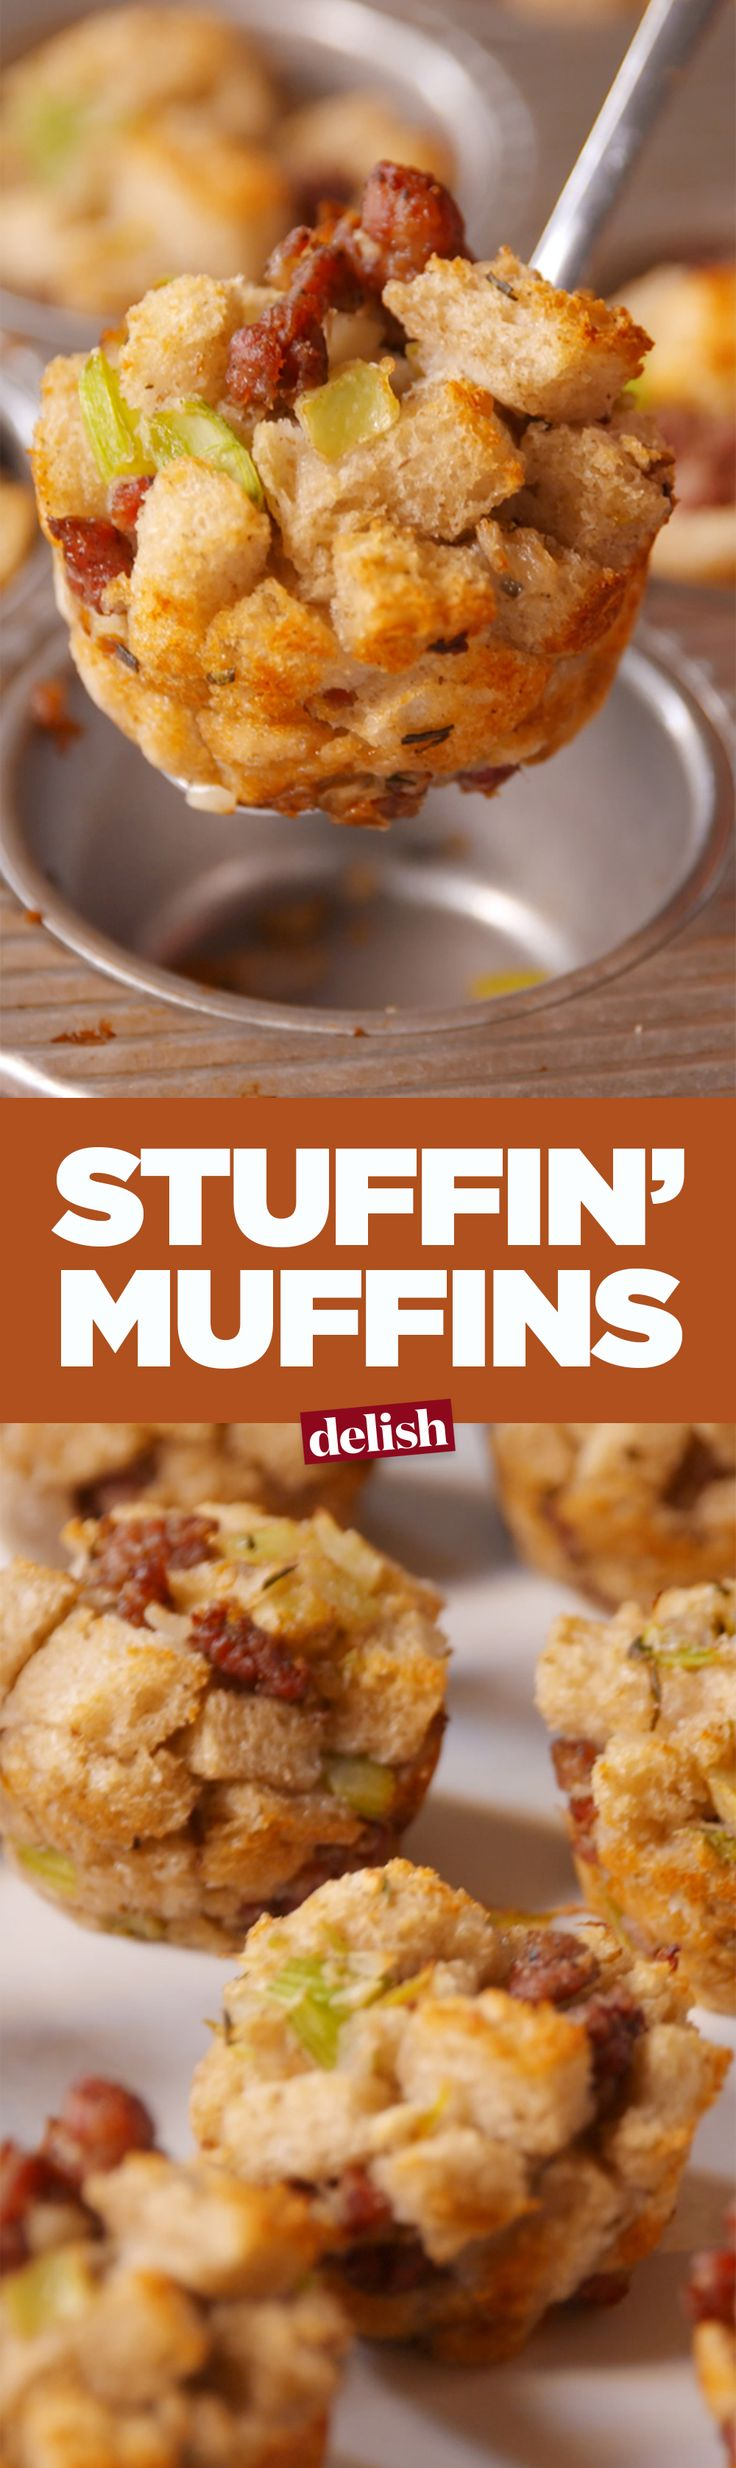 Stuffin' muffins should be a kids' table staple this year. Get the recipe on Delish.com.